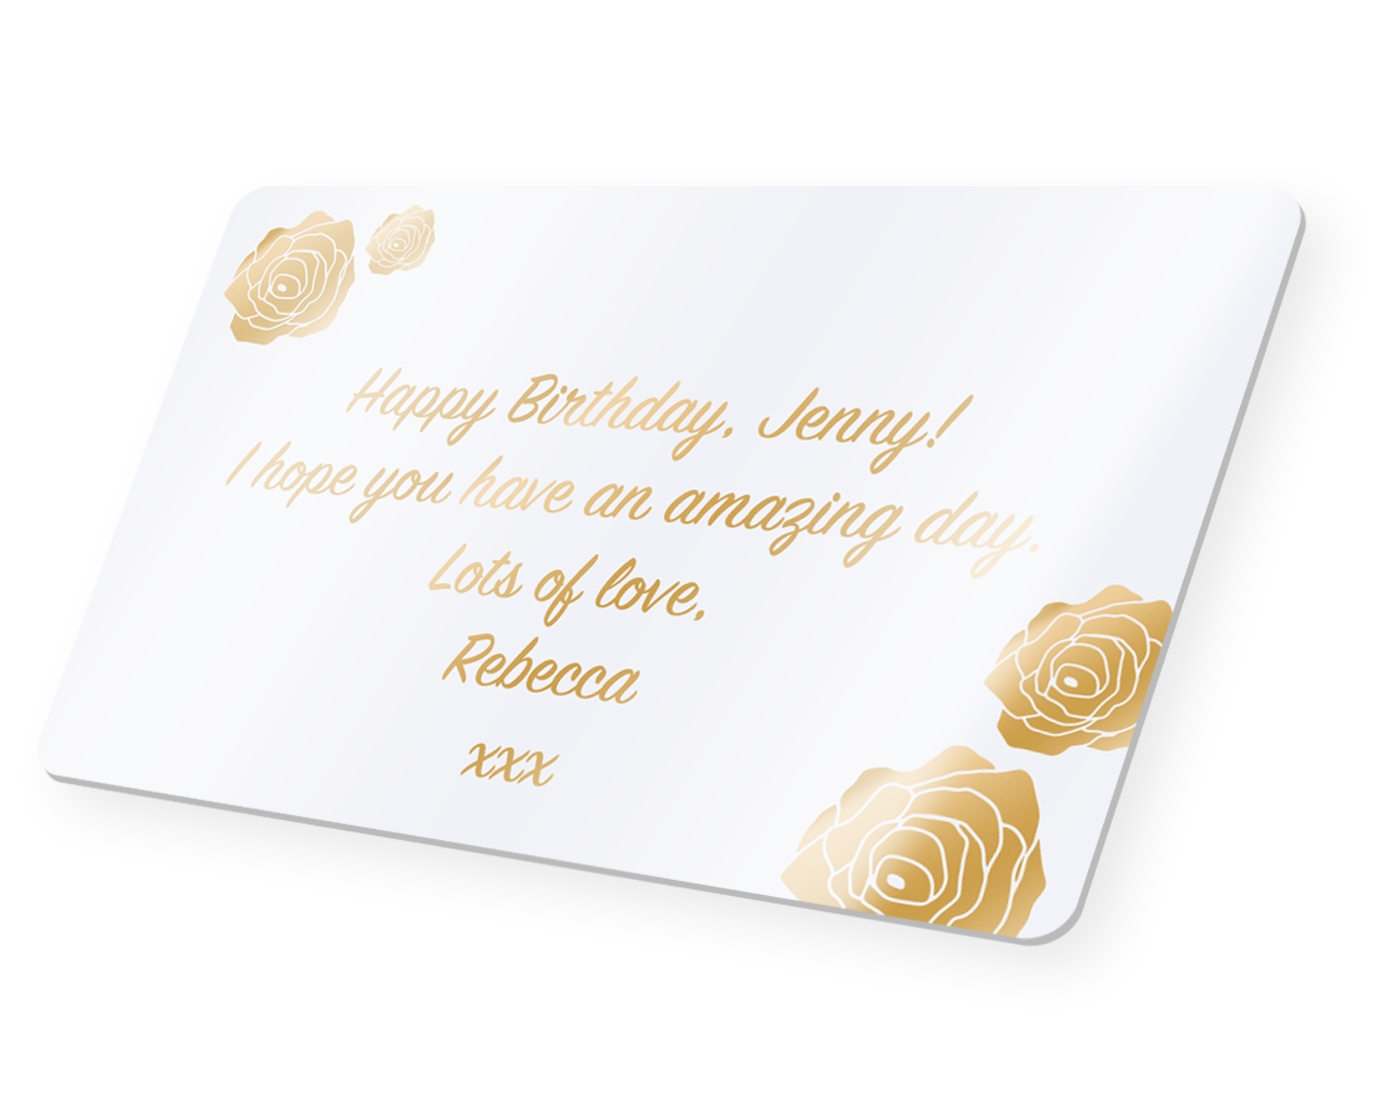 Personalised message card for flower bouquets